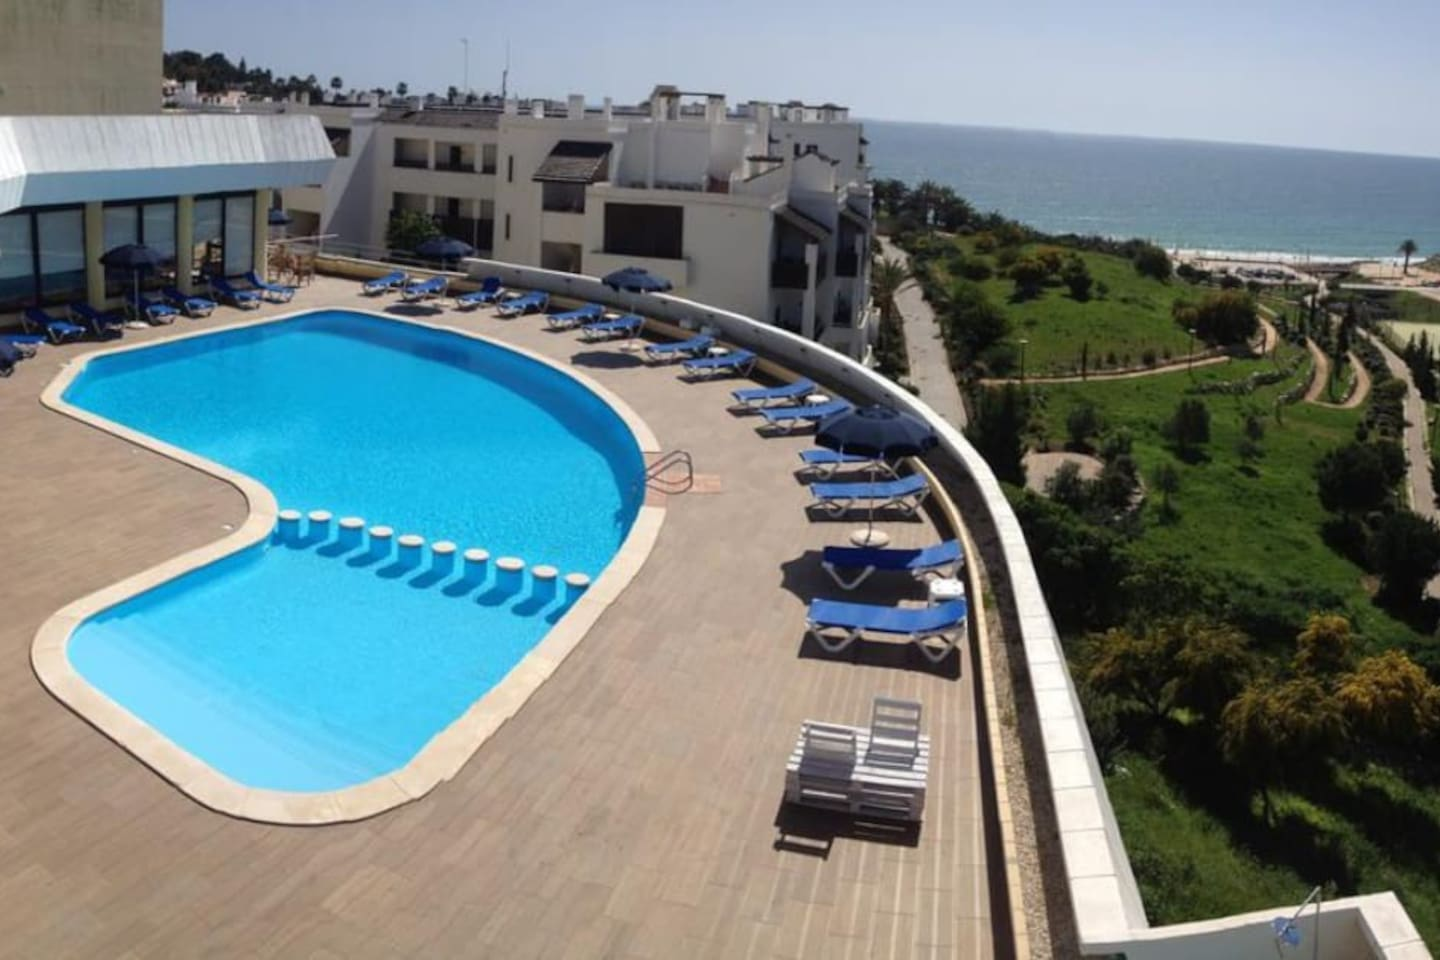 Swimming Pool Terrace - Free access to the swimming pool (open from 1st May to 15th October).